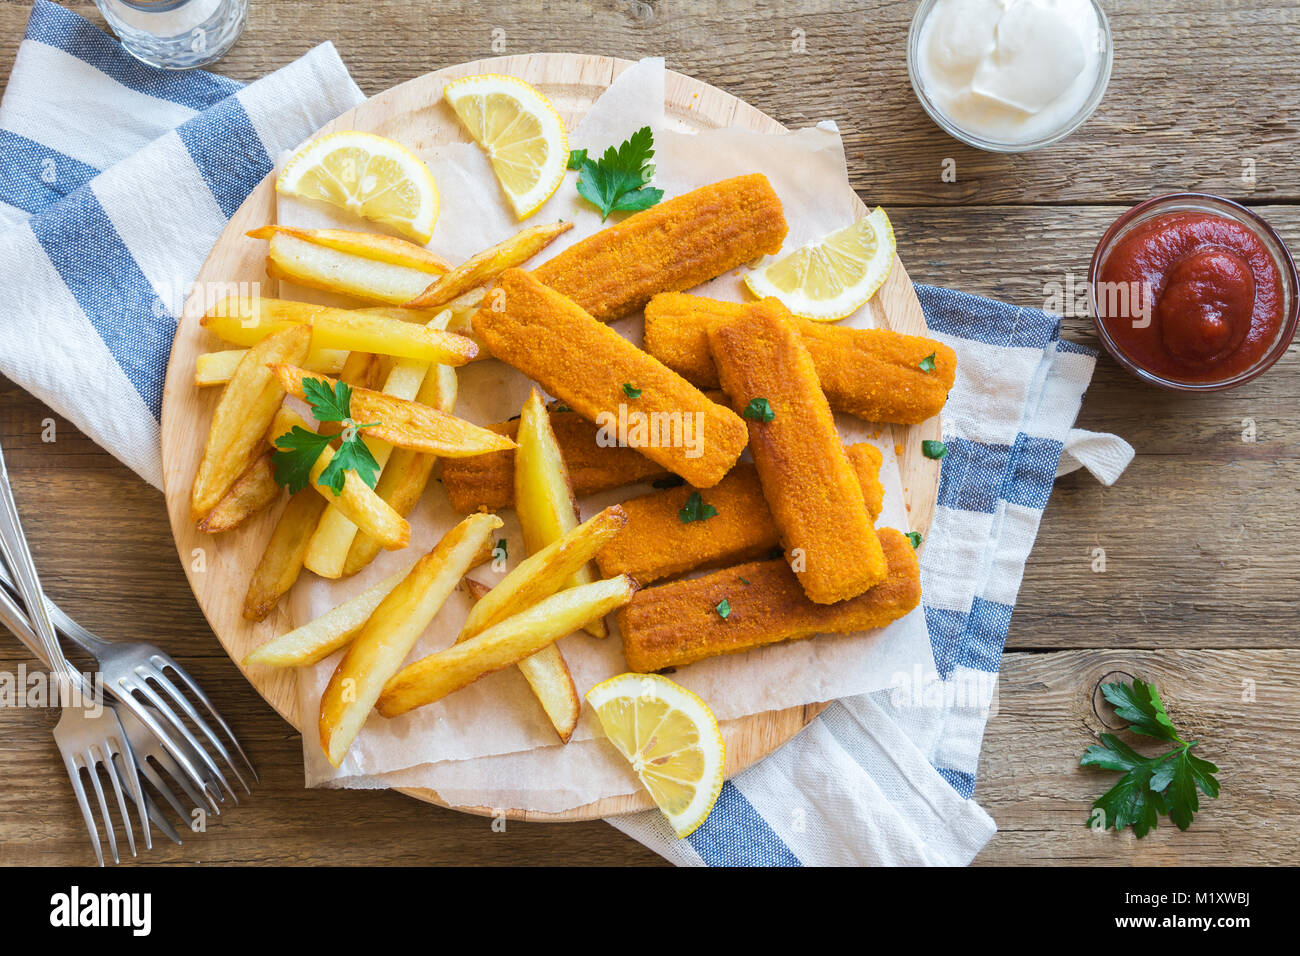 Fried Fish Sticks with French Fries. Fish Fingers over wooden background. Fish Sticks with fried potato and lemon - Stock Image